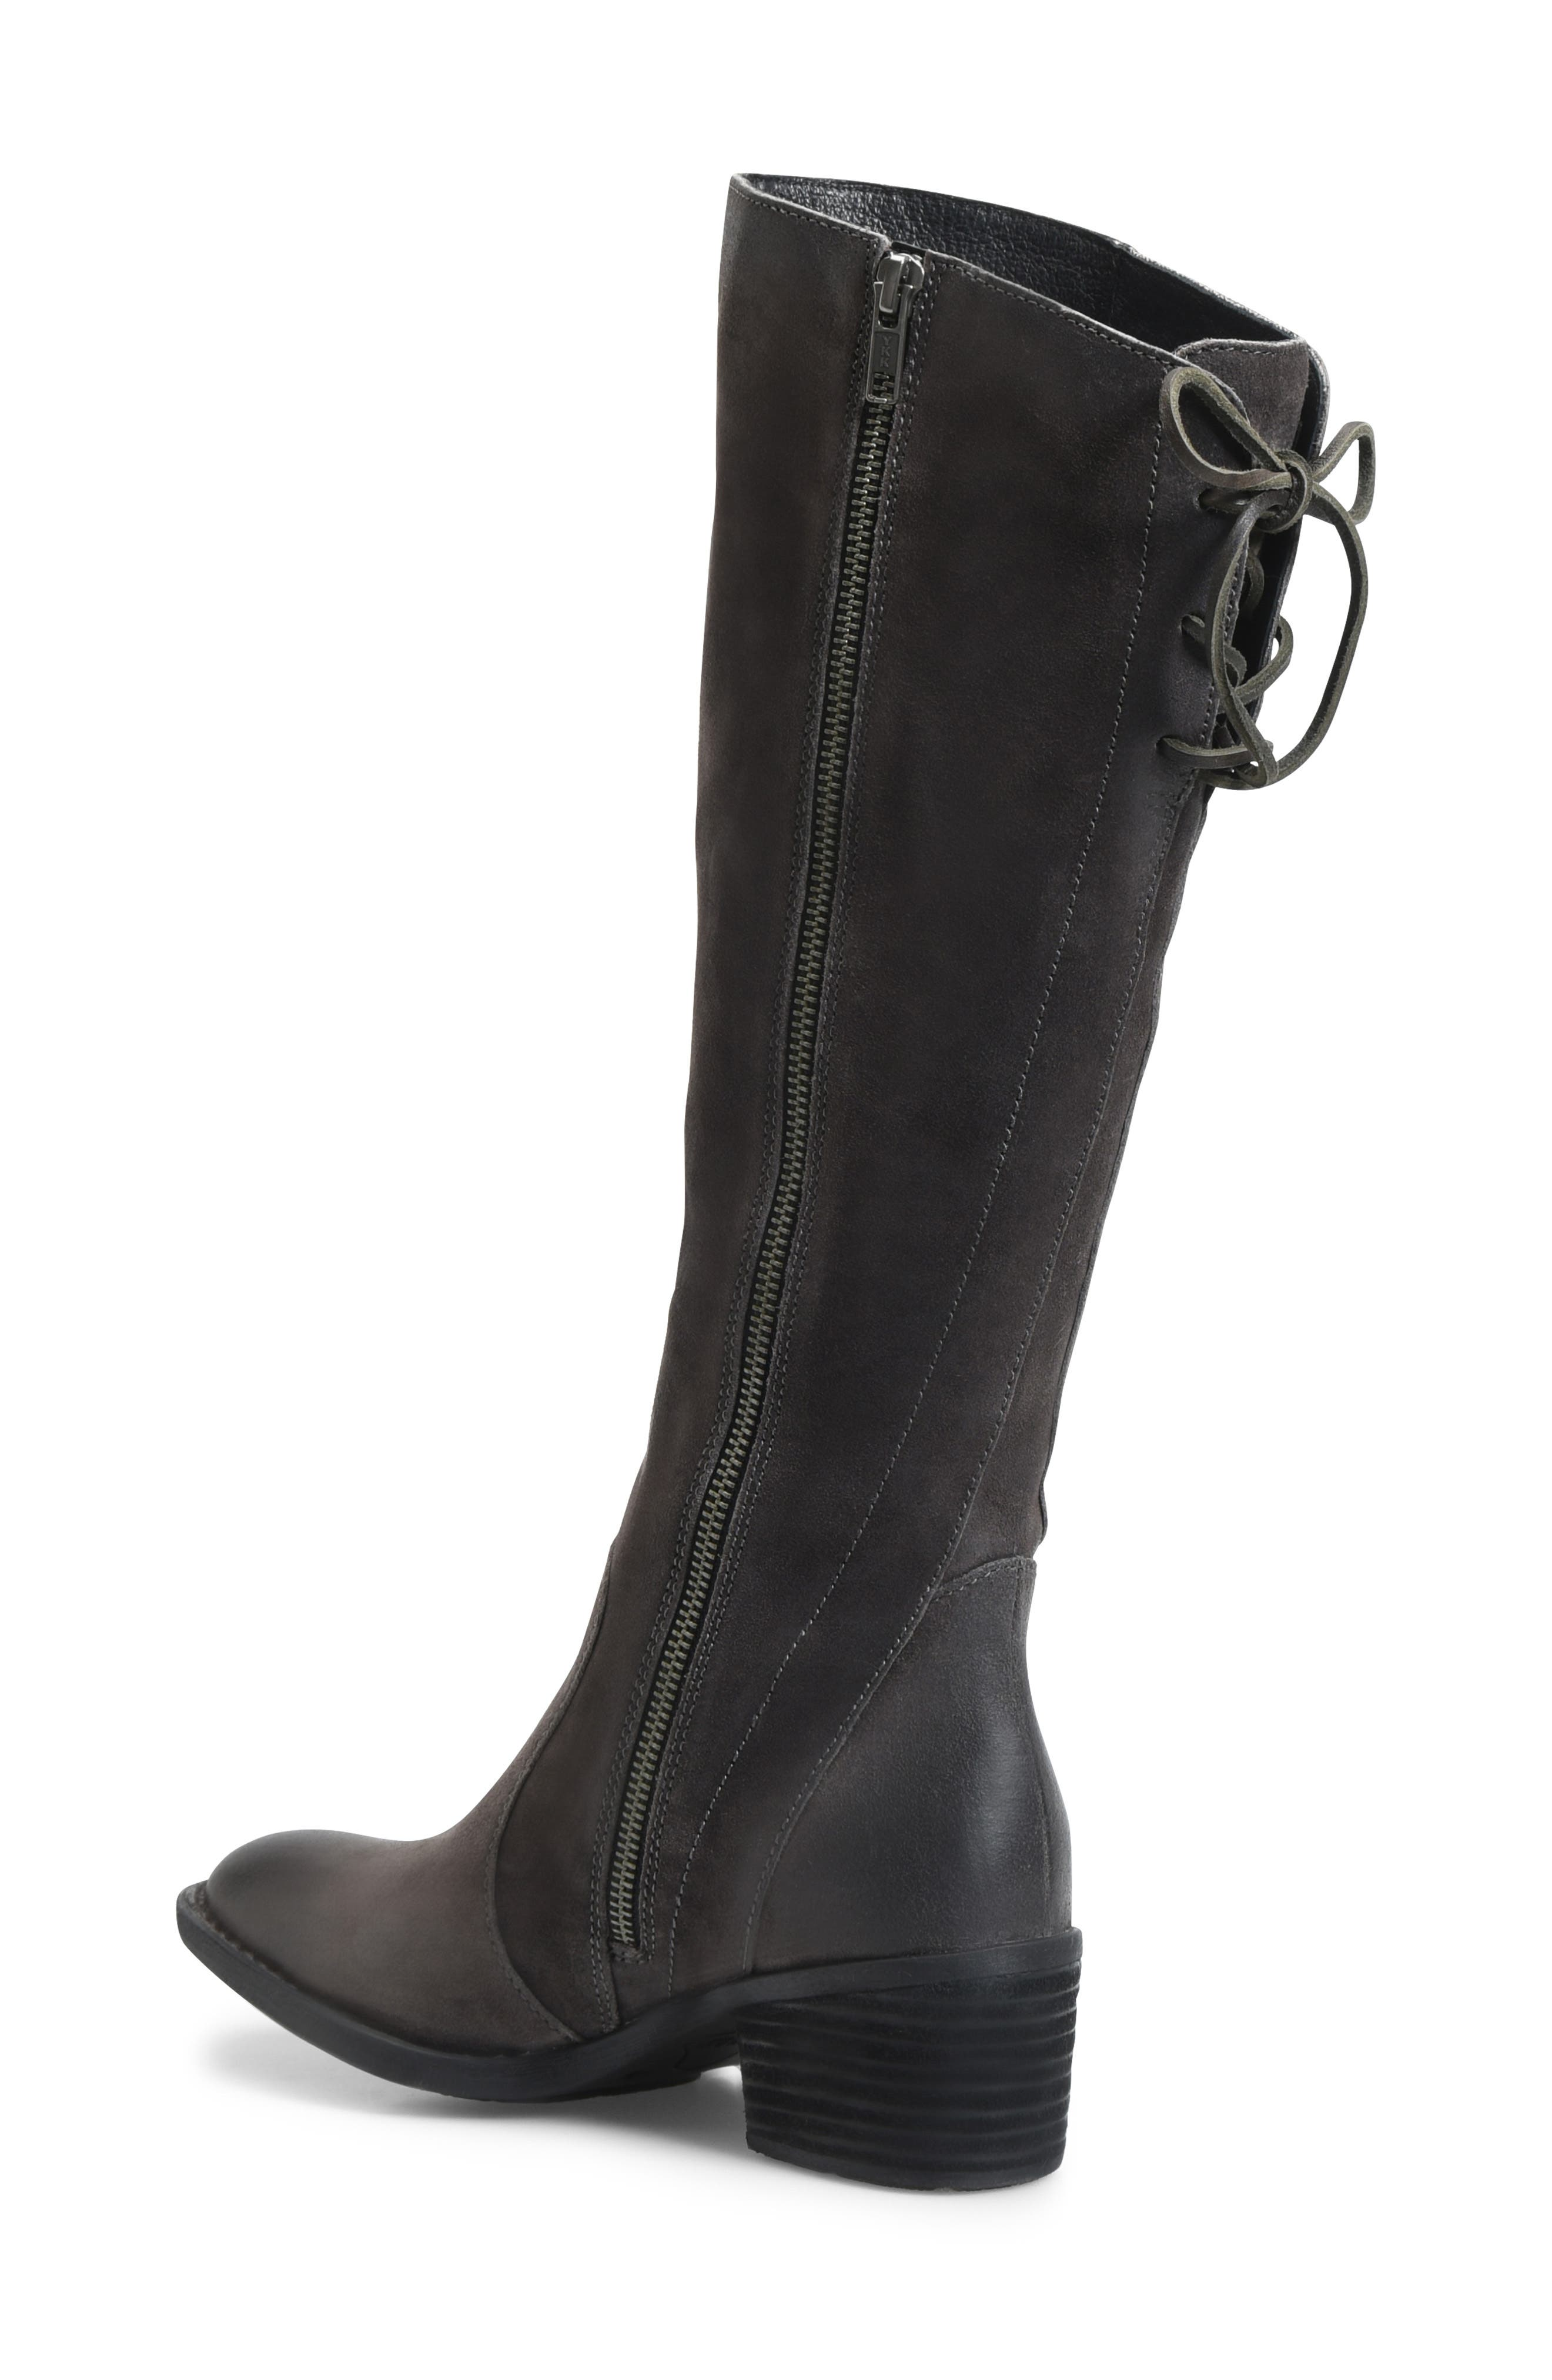 Felicia Knee High Boot,                             Alternate thumbnail 2, color,                             021